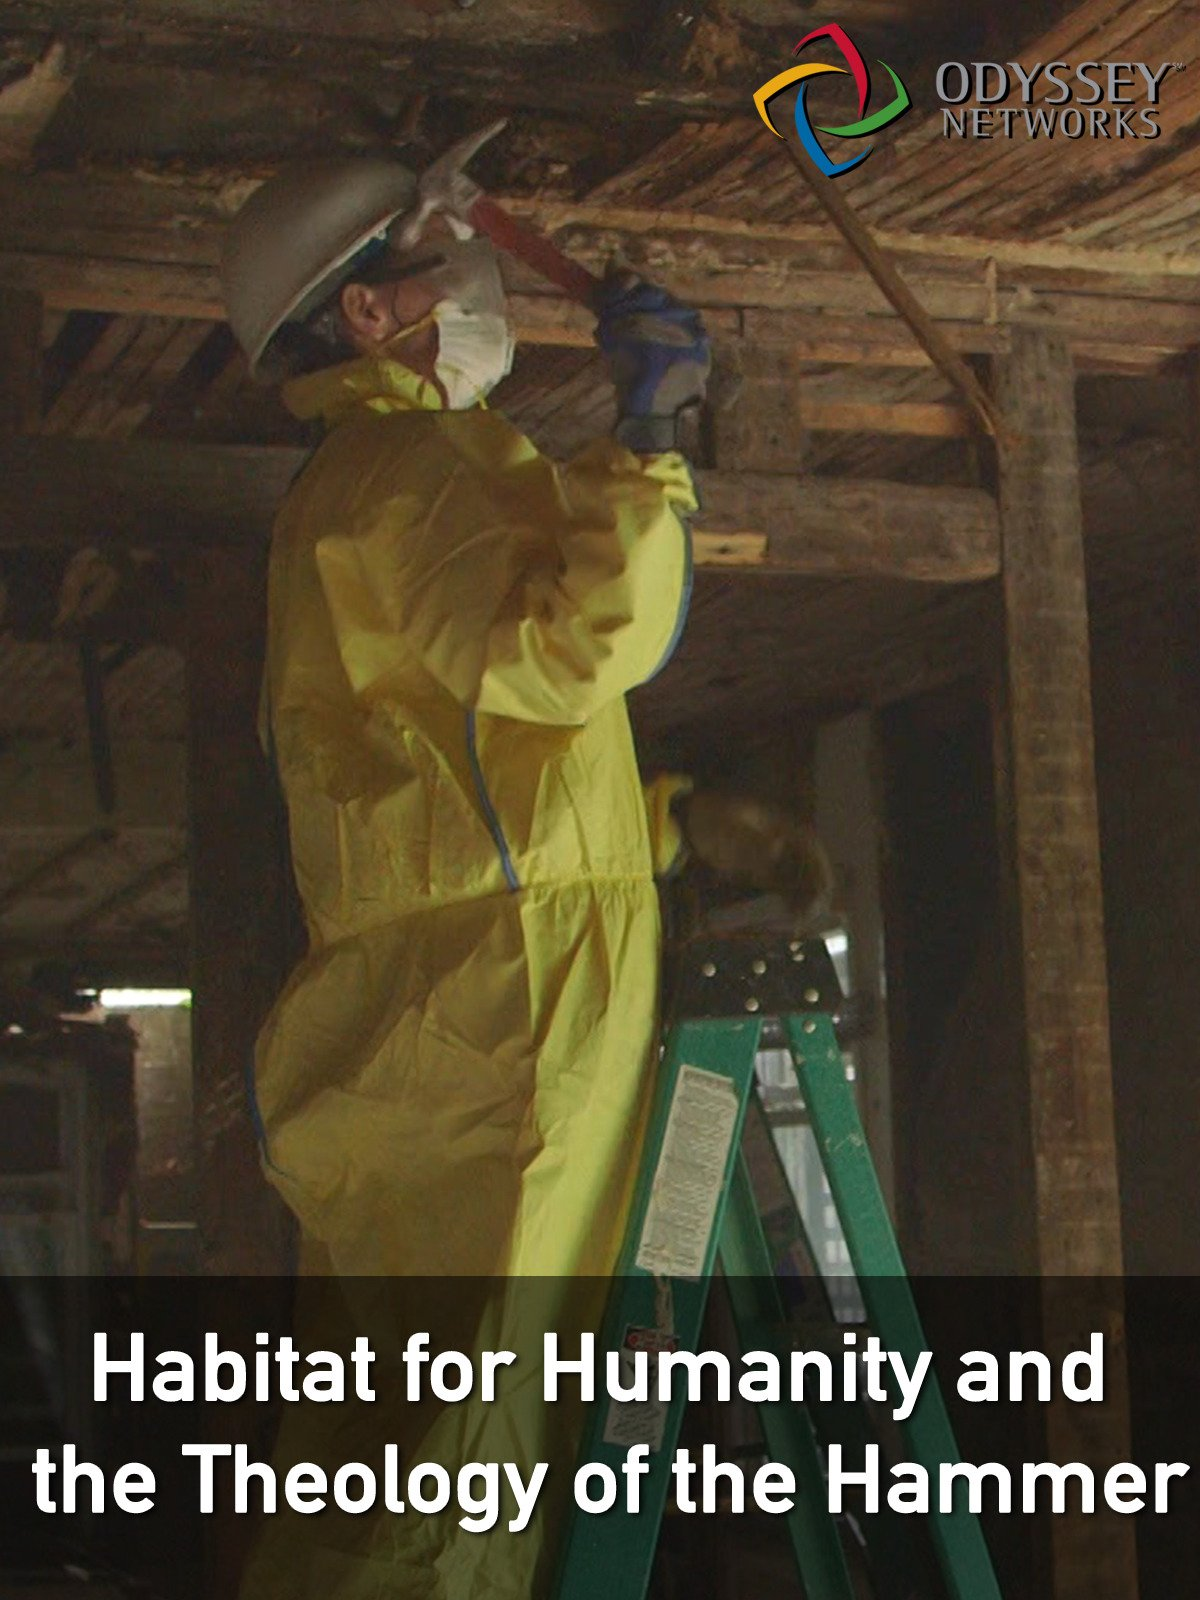 Clip: Habitat for Humanity and the Theology of the Hammer